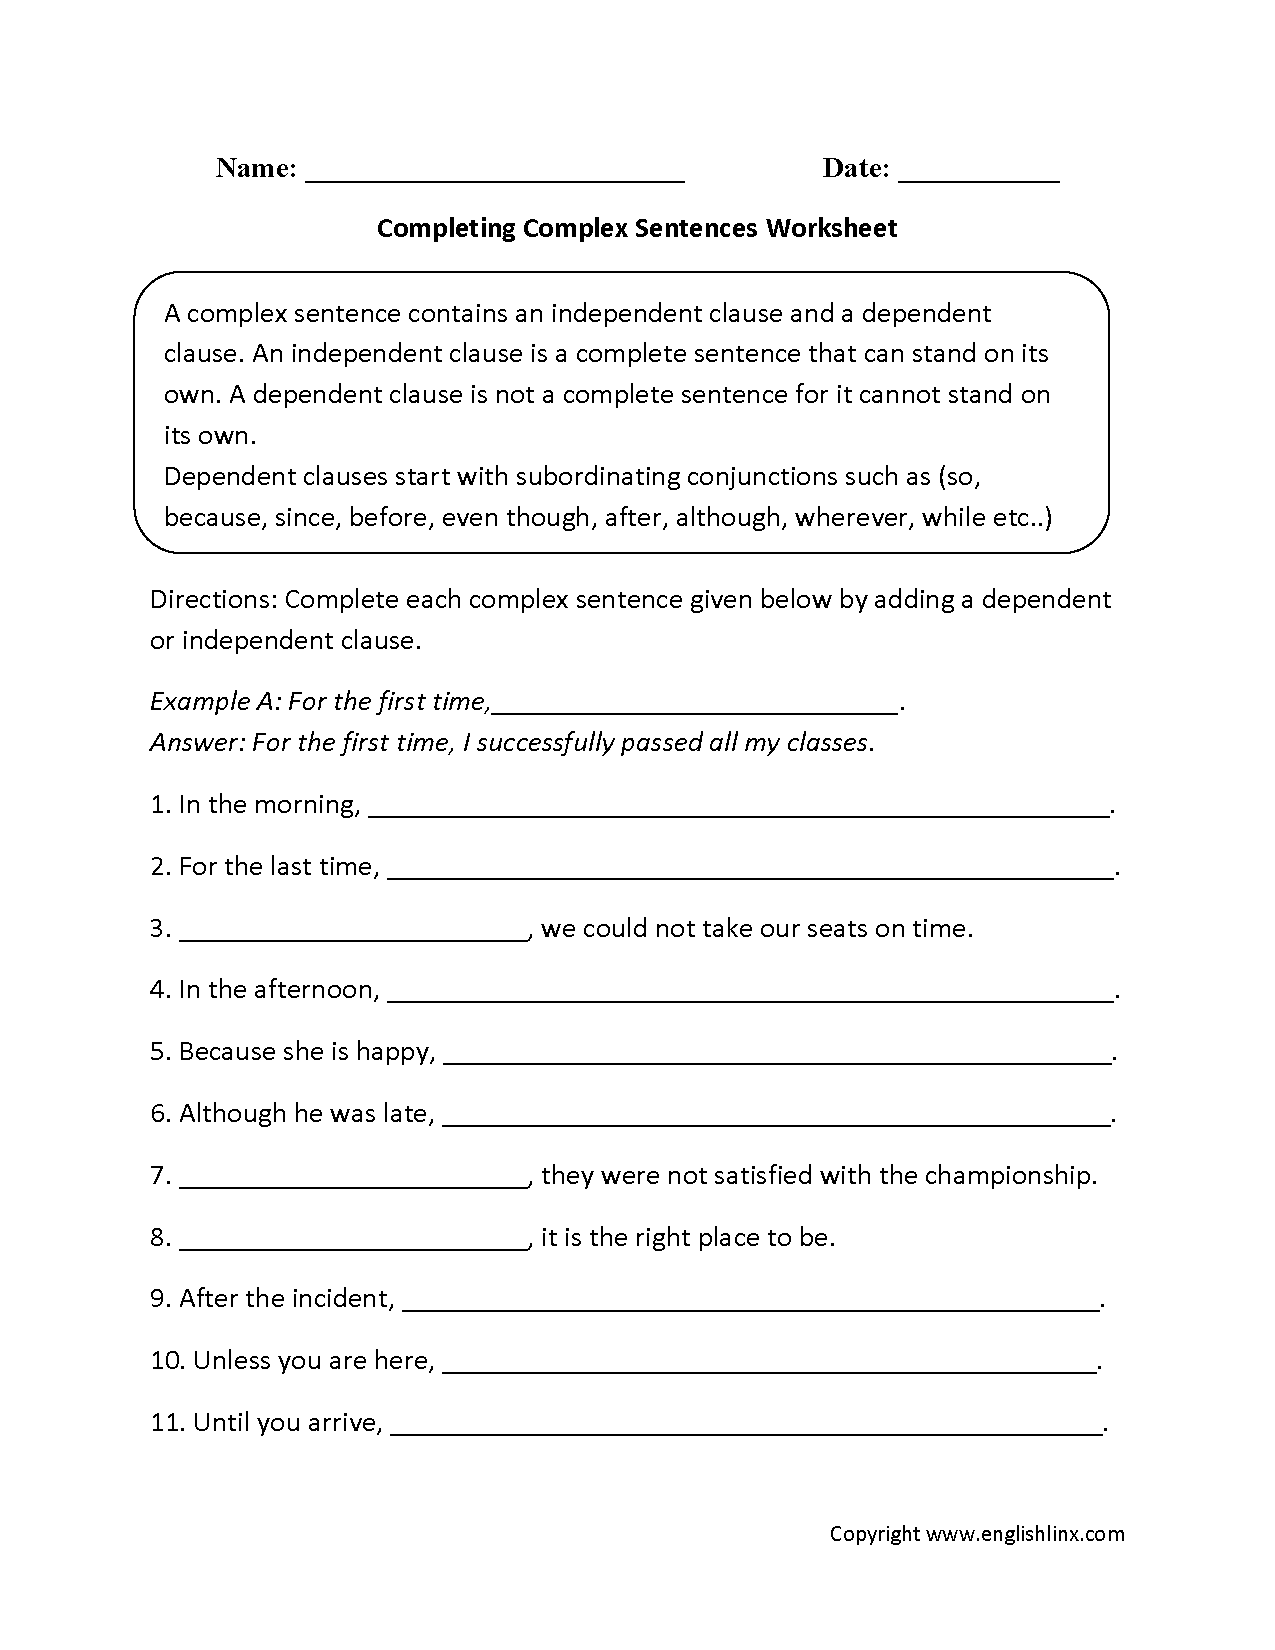 Worksheets Quiz On Types Of Sentences Simple Compound Complex Compound-complex completing complex sentences worksheets more